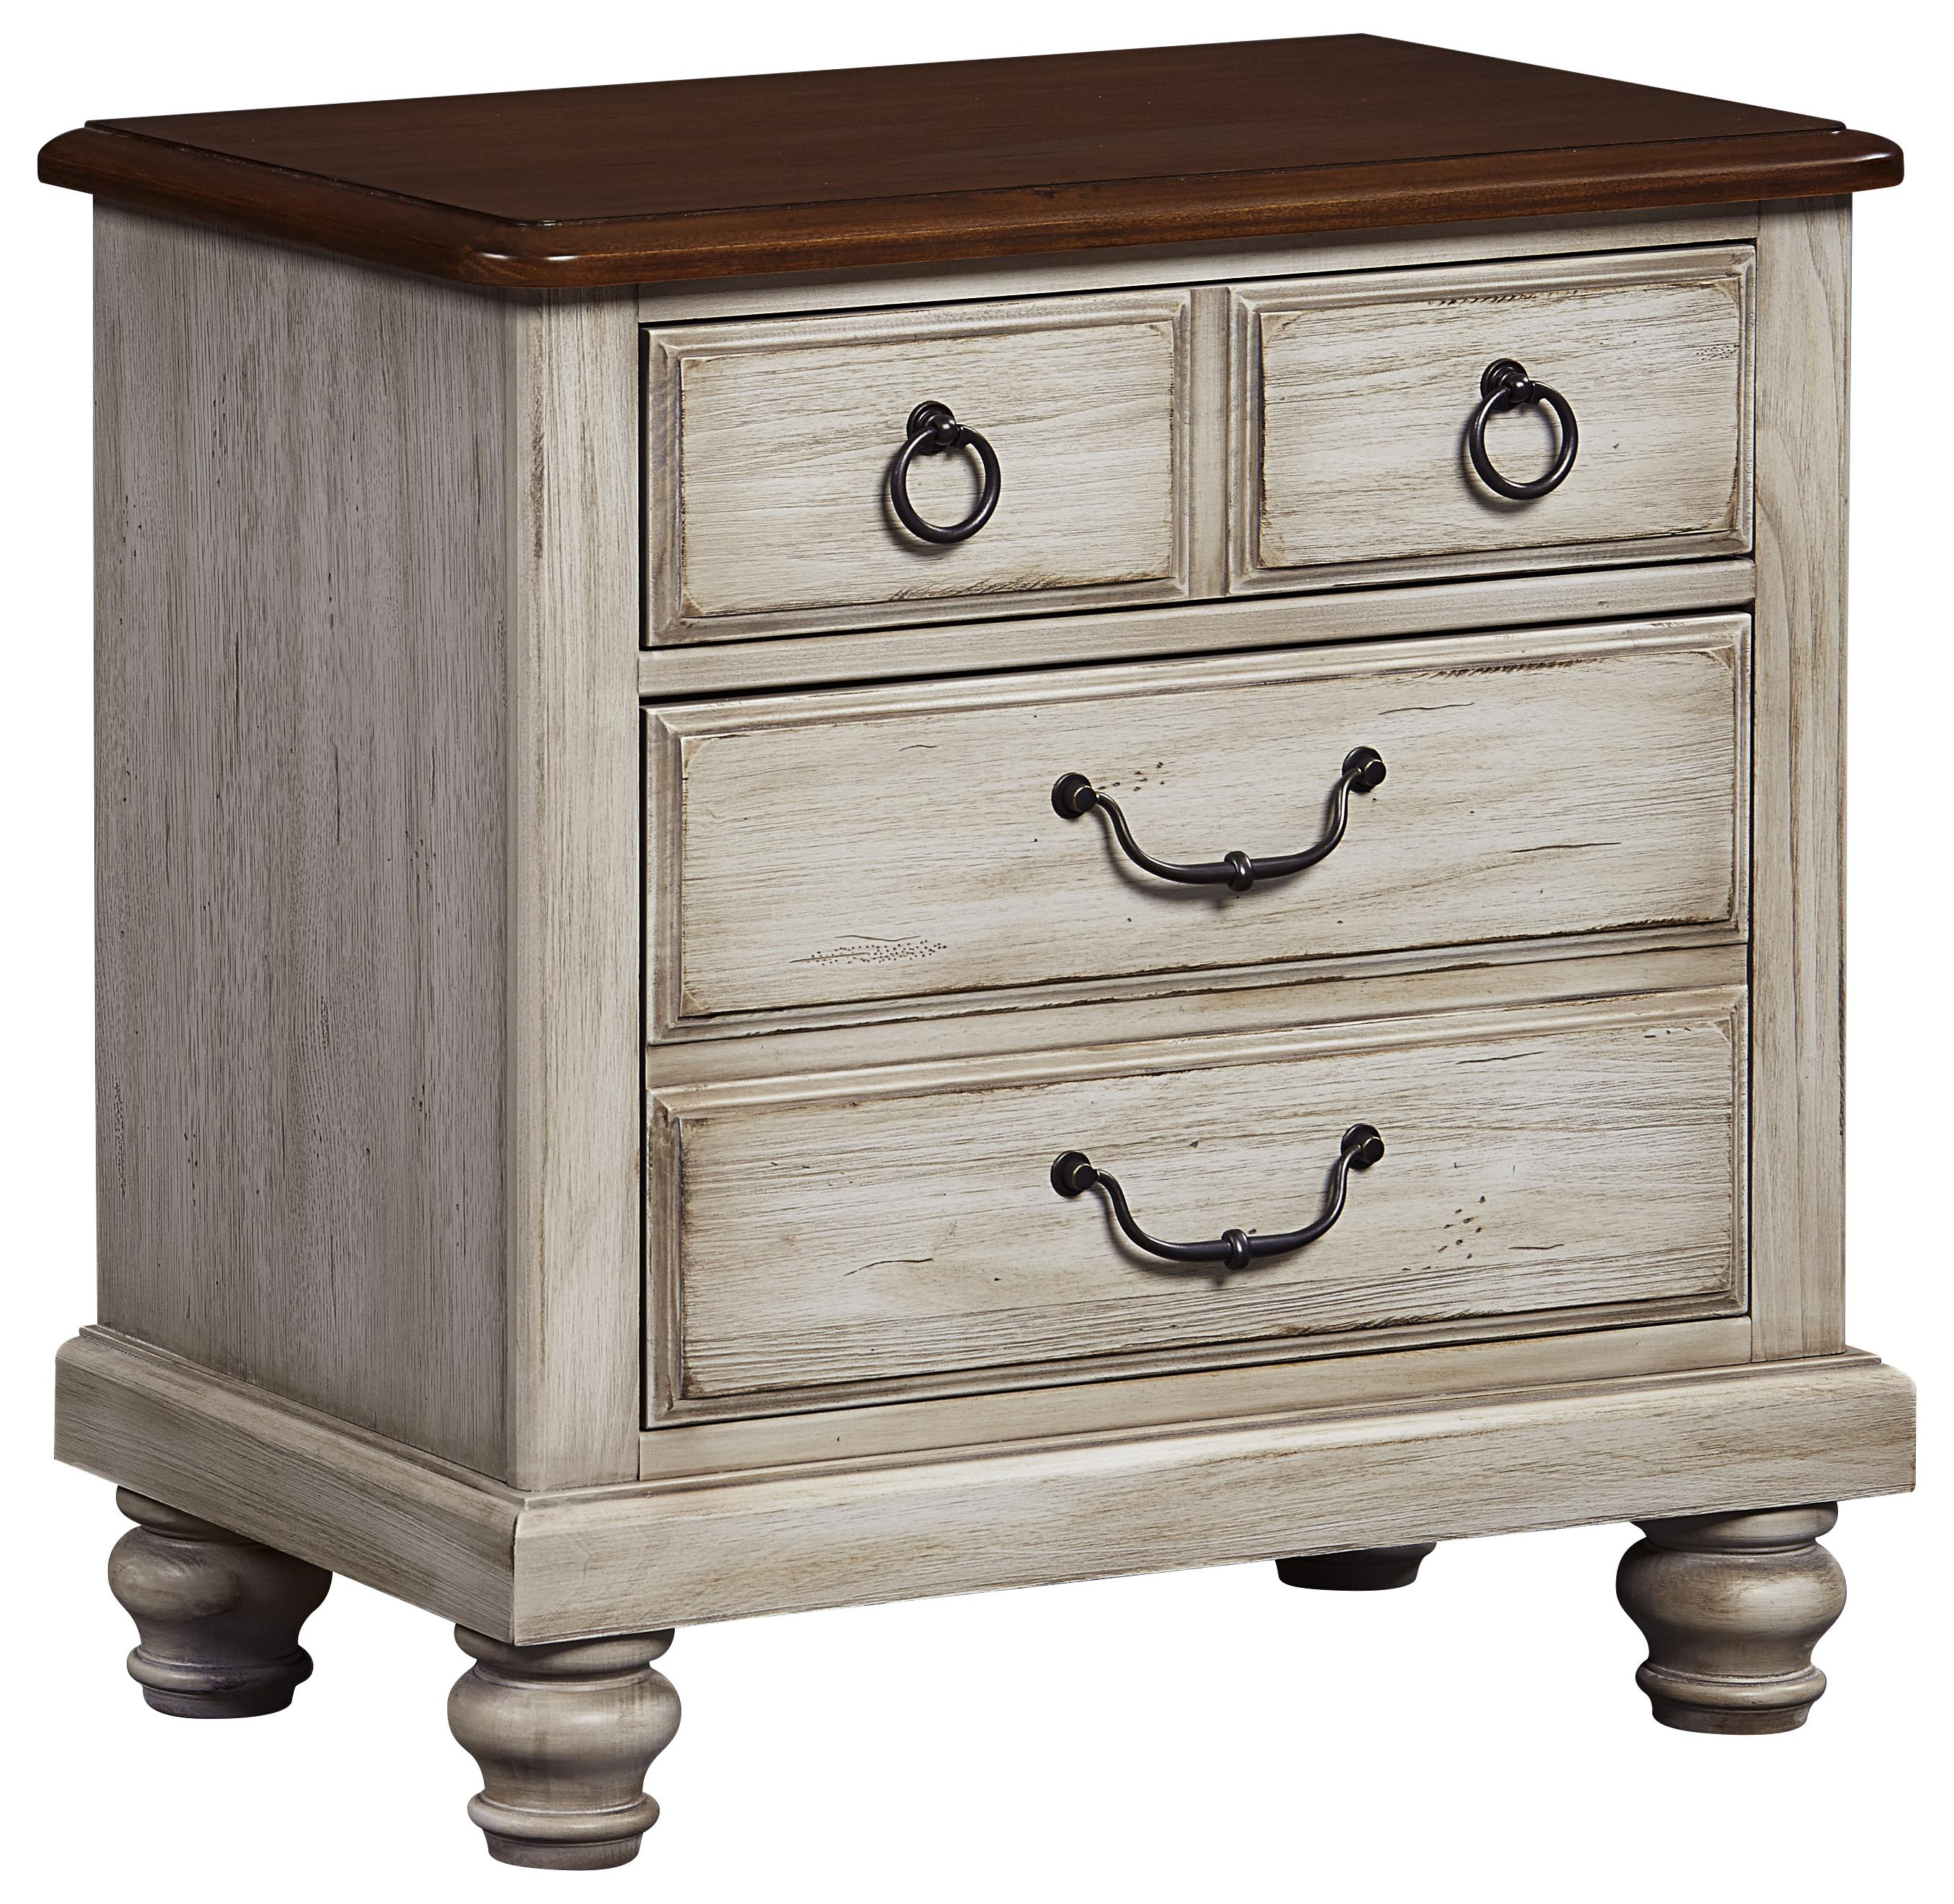 Vaughan Bassett Arrendelle Night Stand - 2 Drawers - Item Number: 442-226